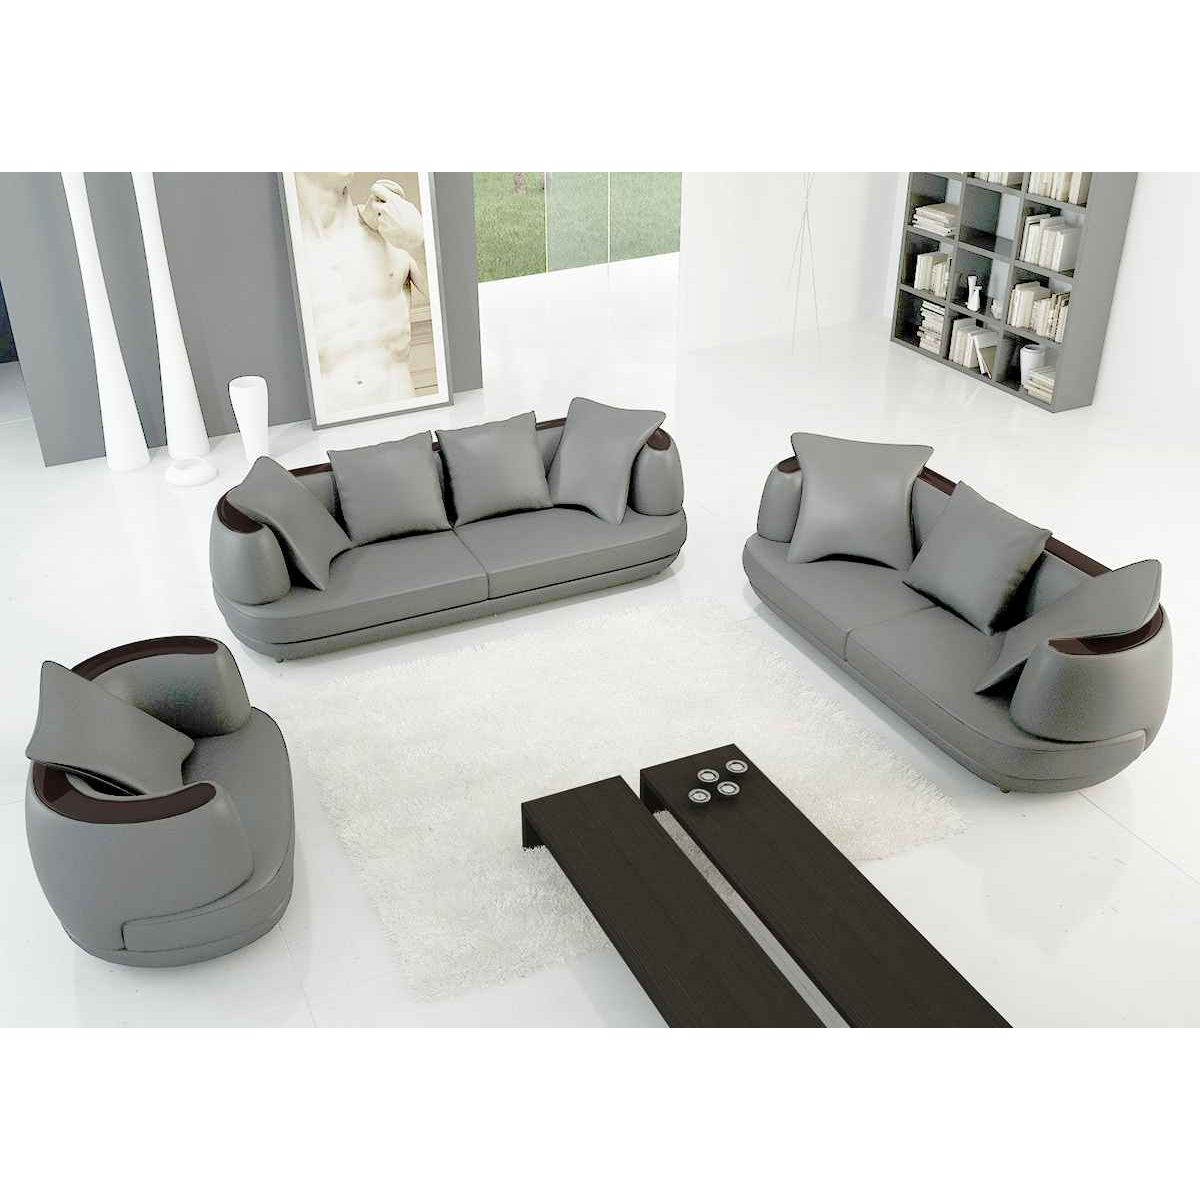 Deco in paris ensemble canape 3 2 1 places en cuir gris for Canape cuir paris